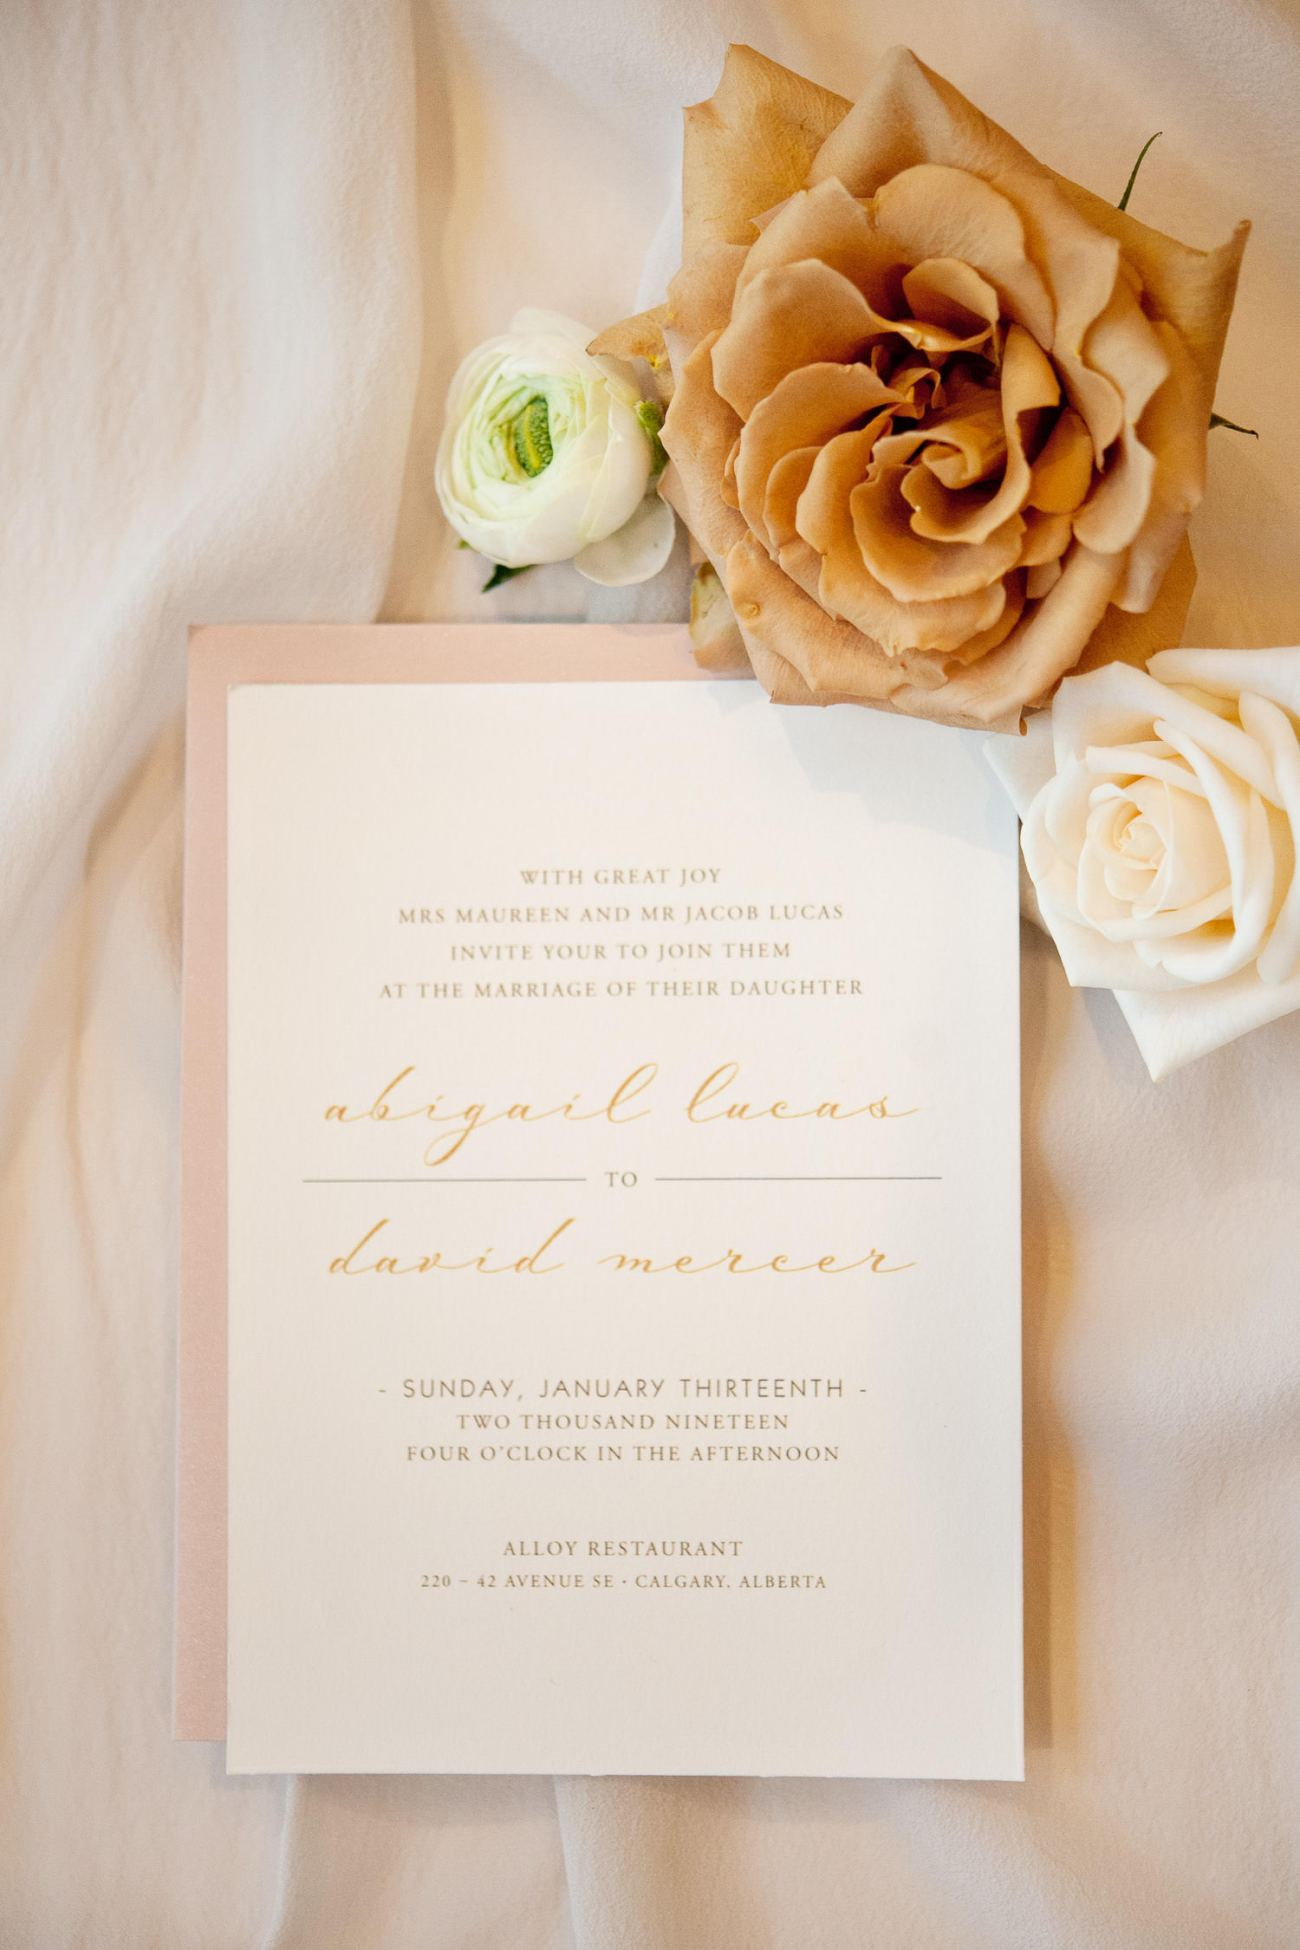 wedding invitation styled with roses captured by Tara Whittaker Photography